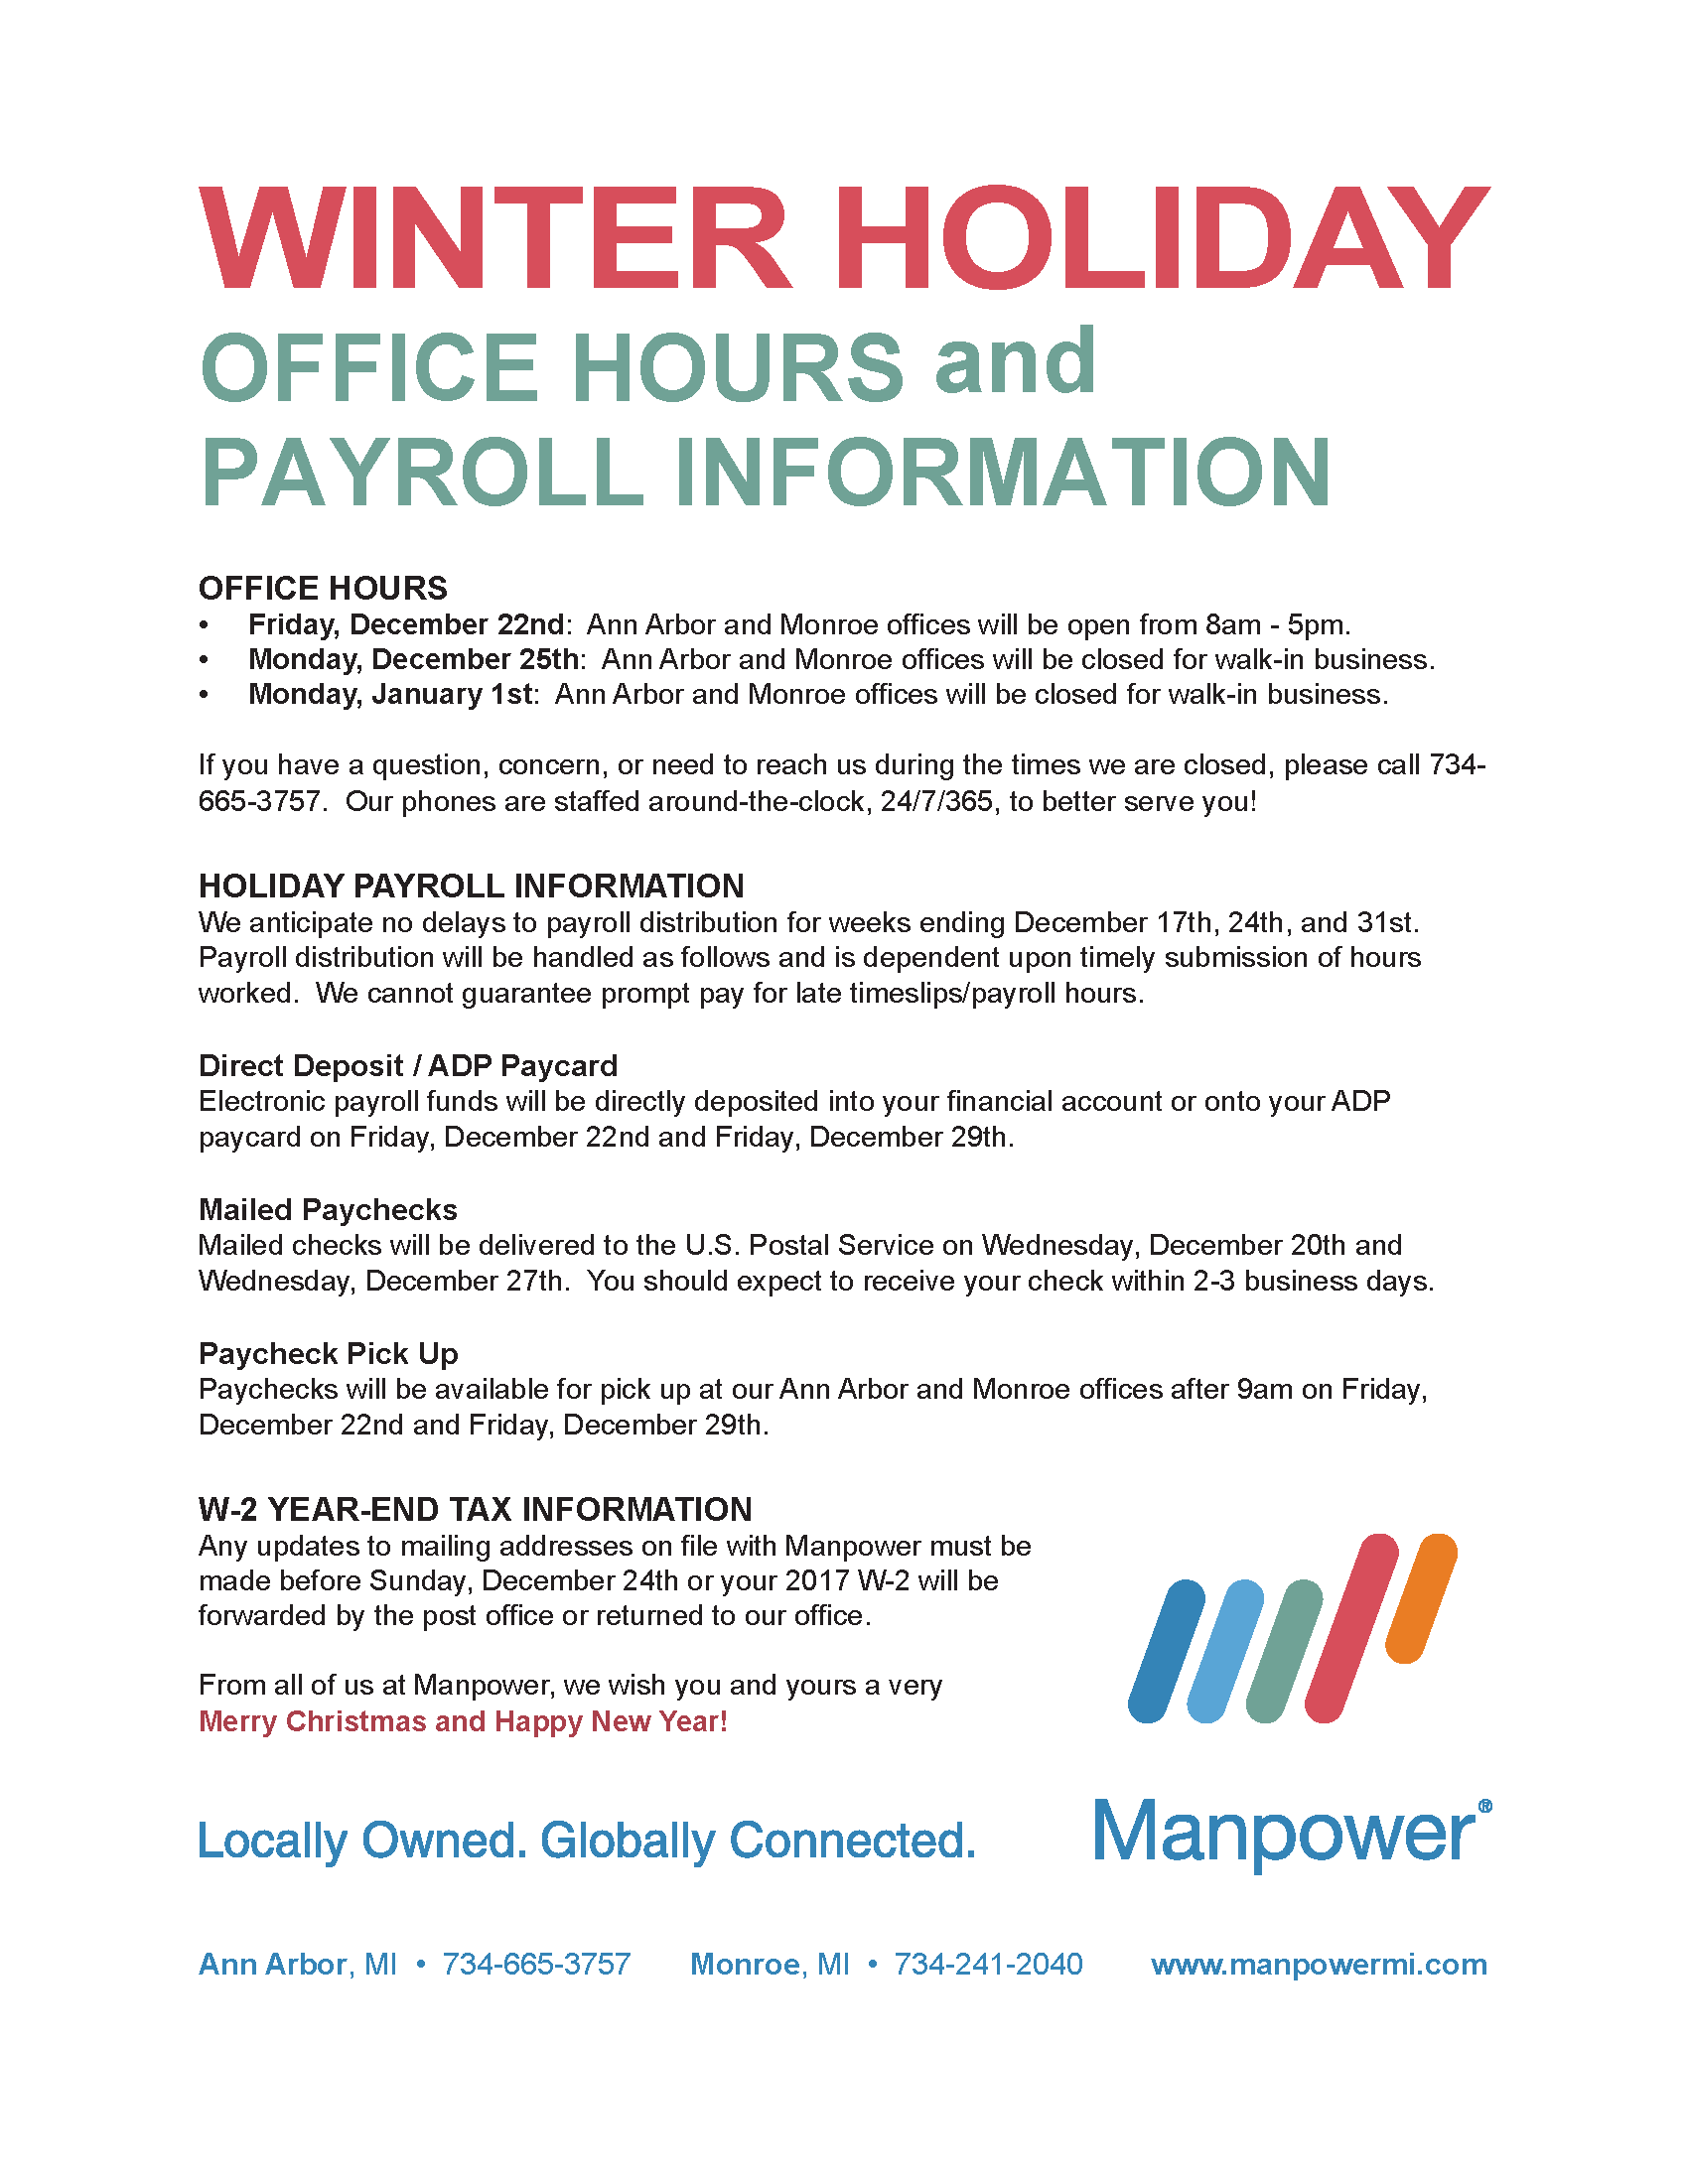 Winter Holiday fice Hours and Payroll Information